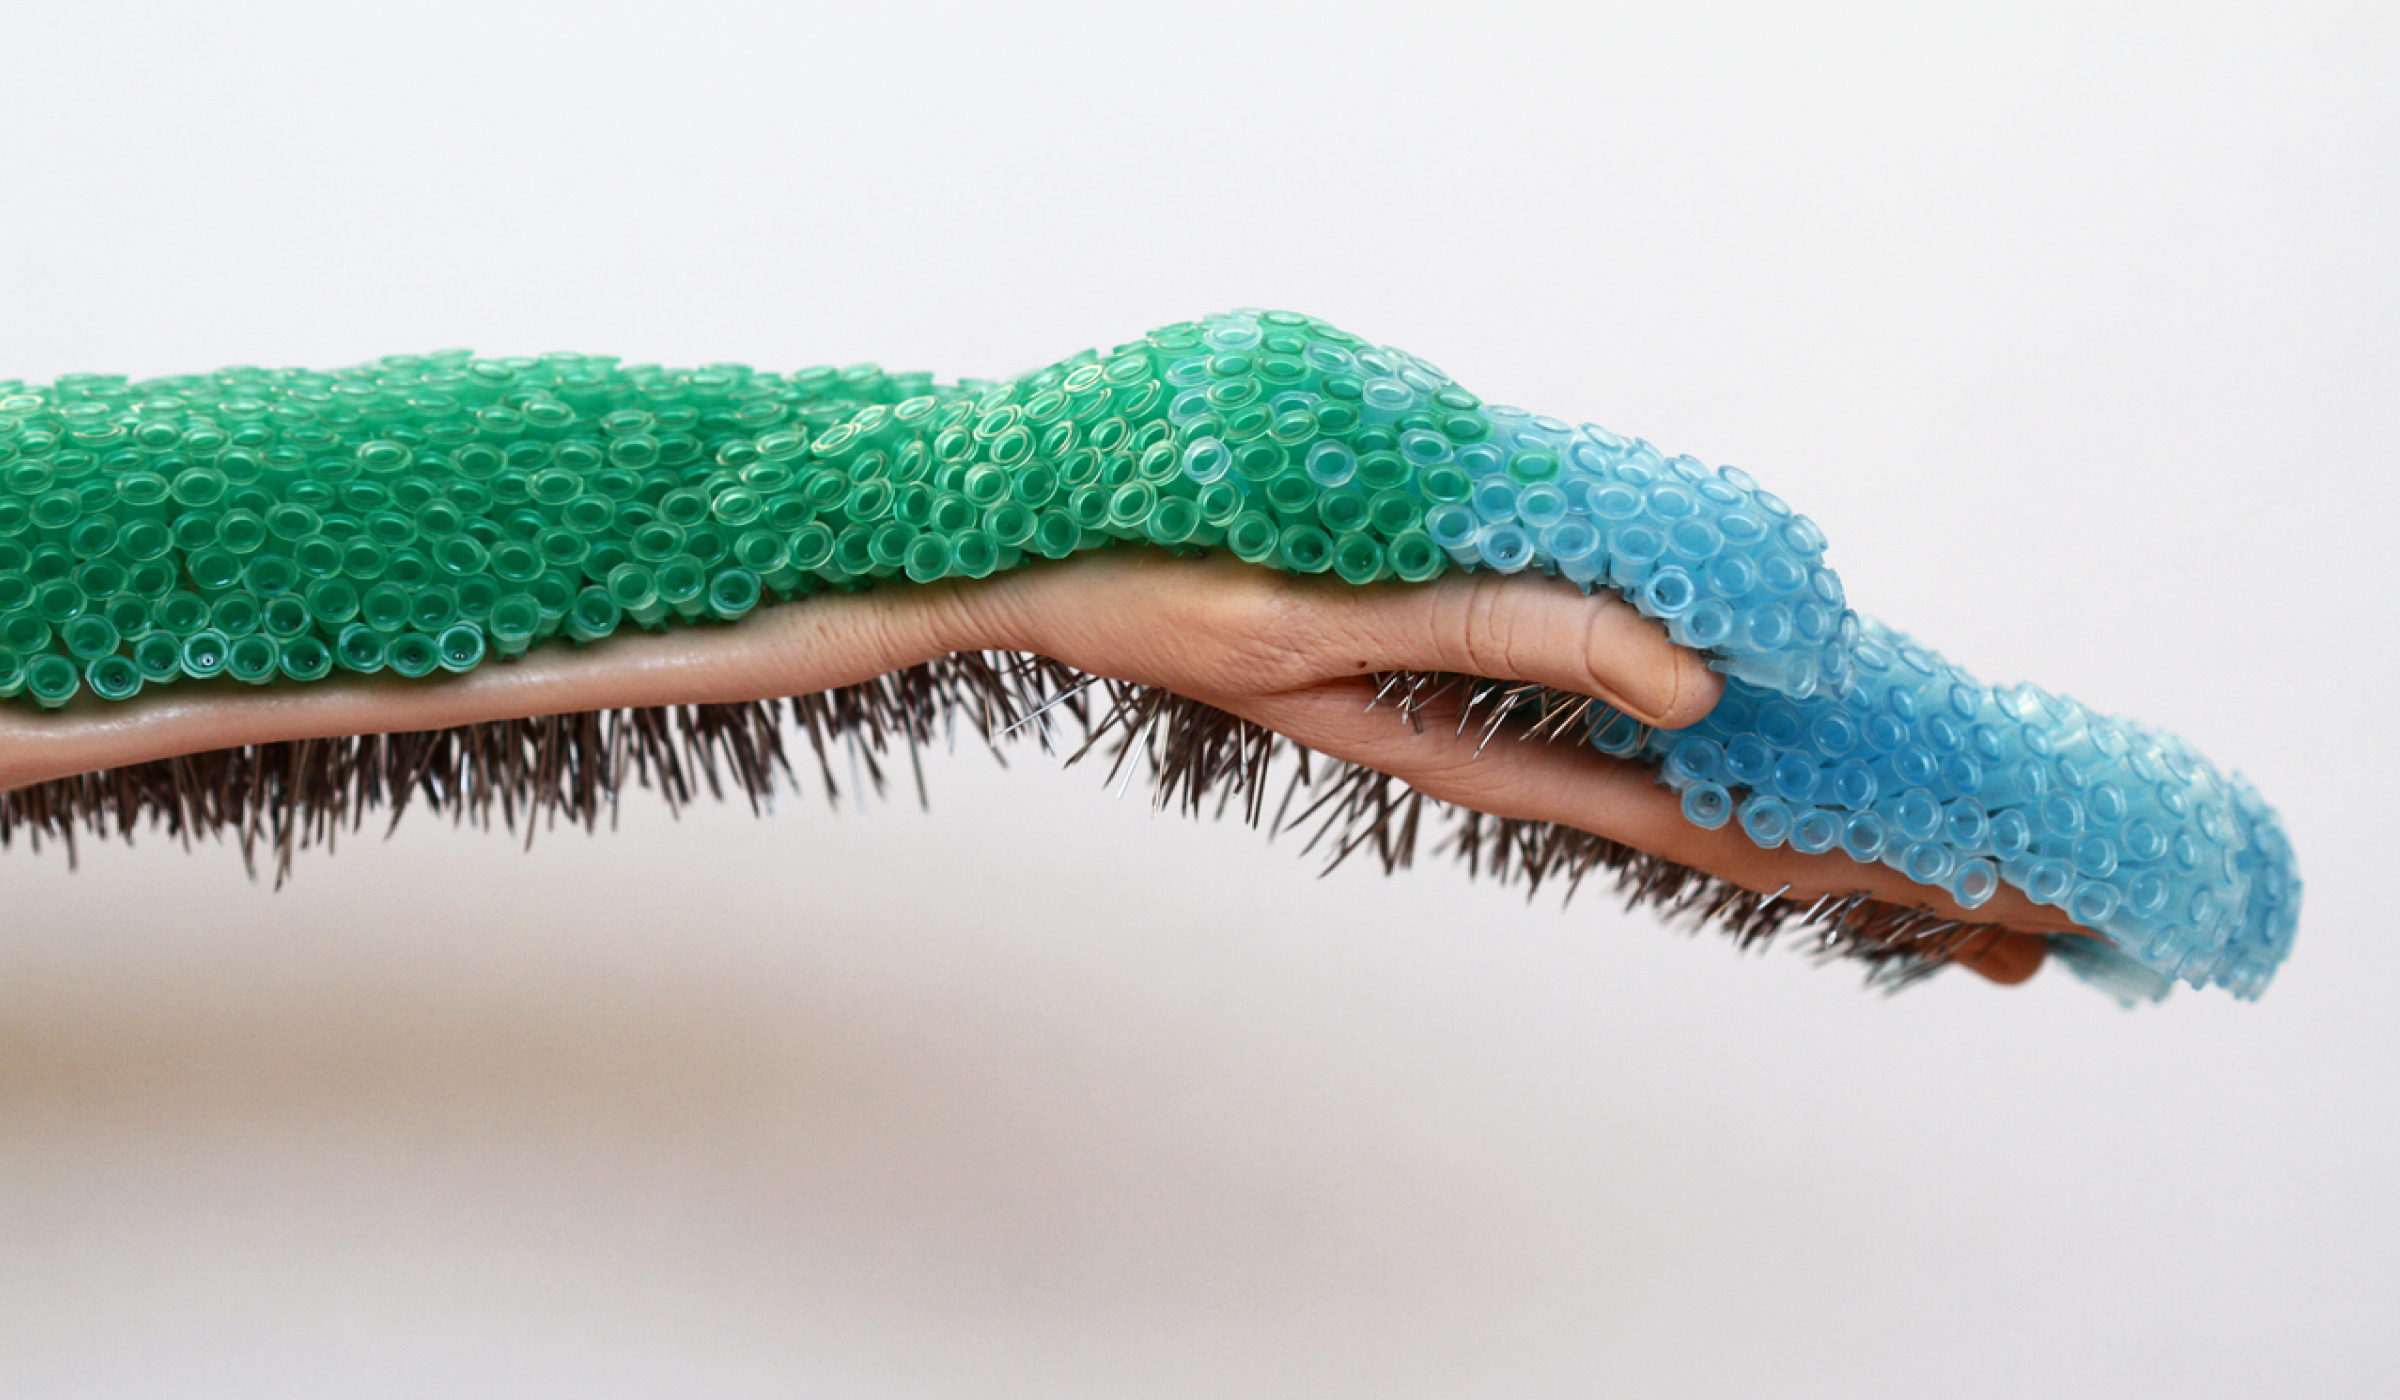 Hand extended horizontally across a plain background, holding hundreds of green and blue needles